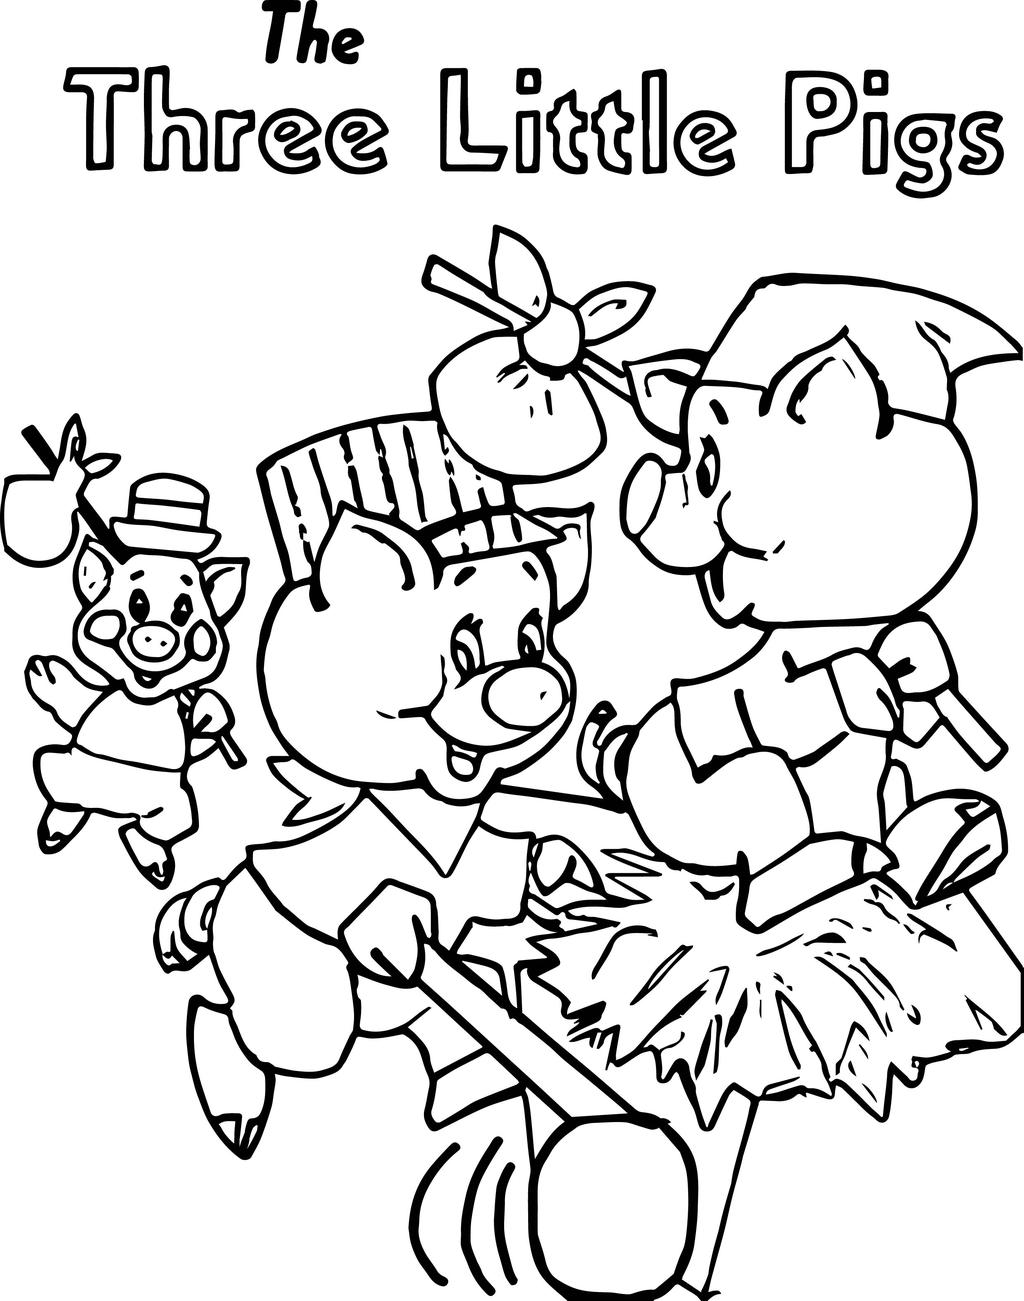 Three Little Pigs Coloring Pages Running Level - Free Printable ...